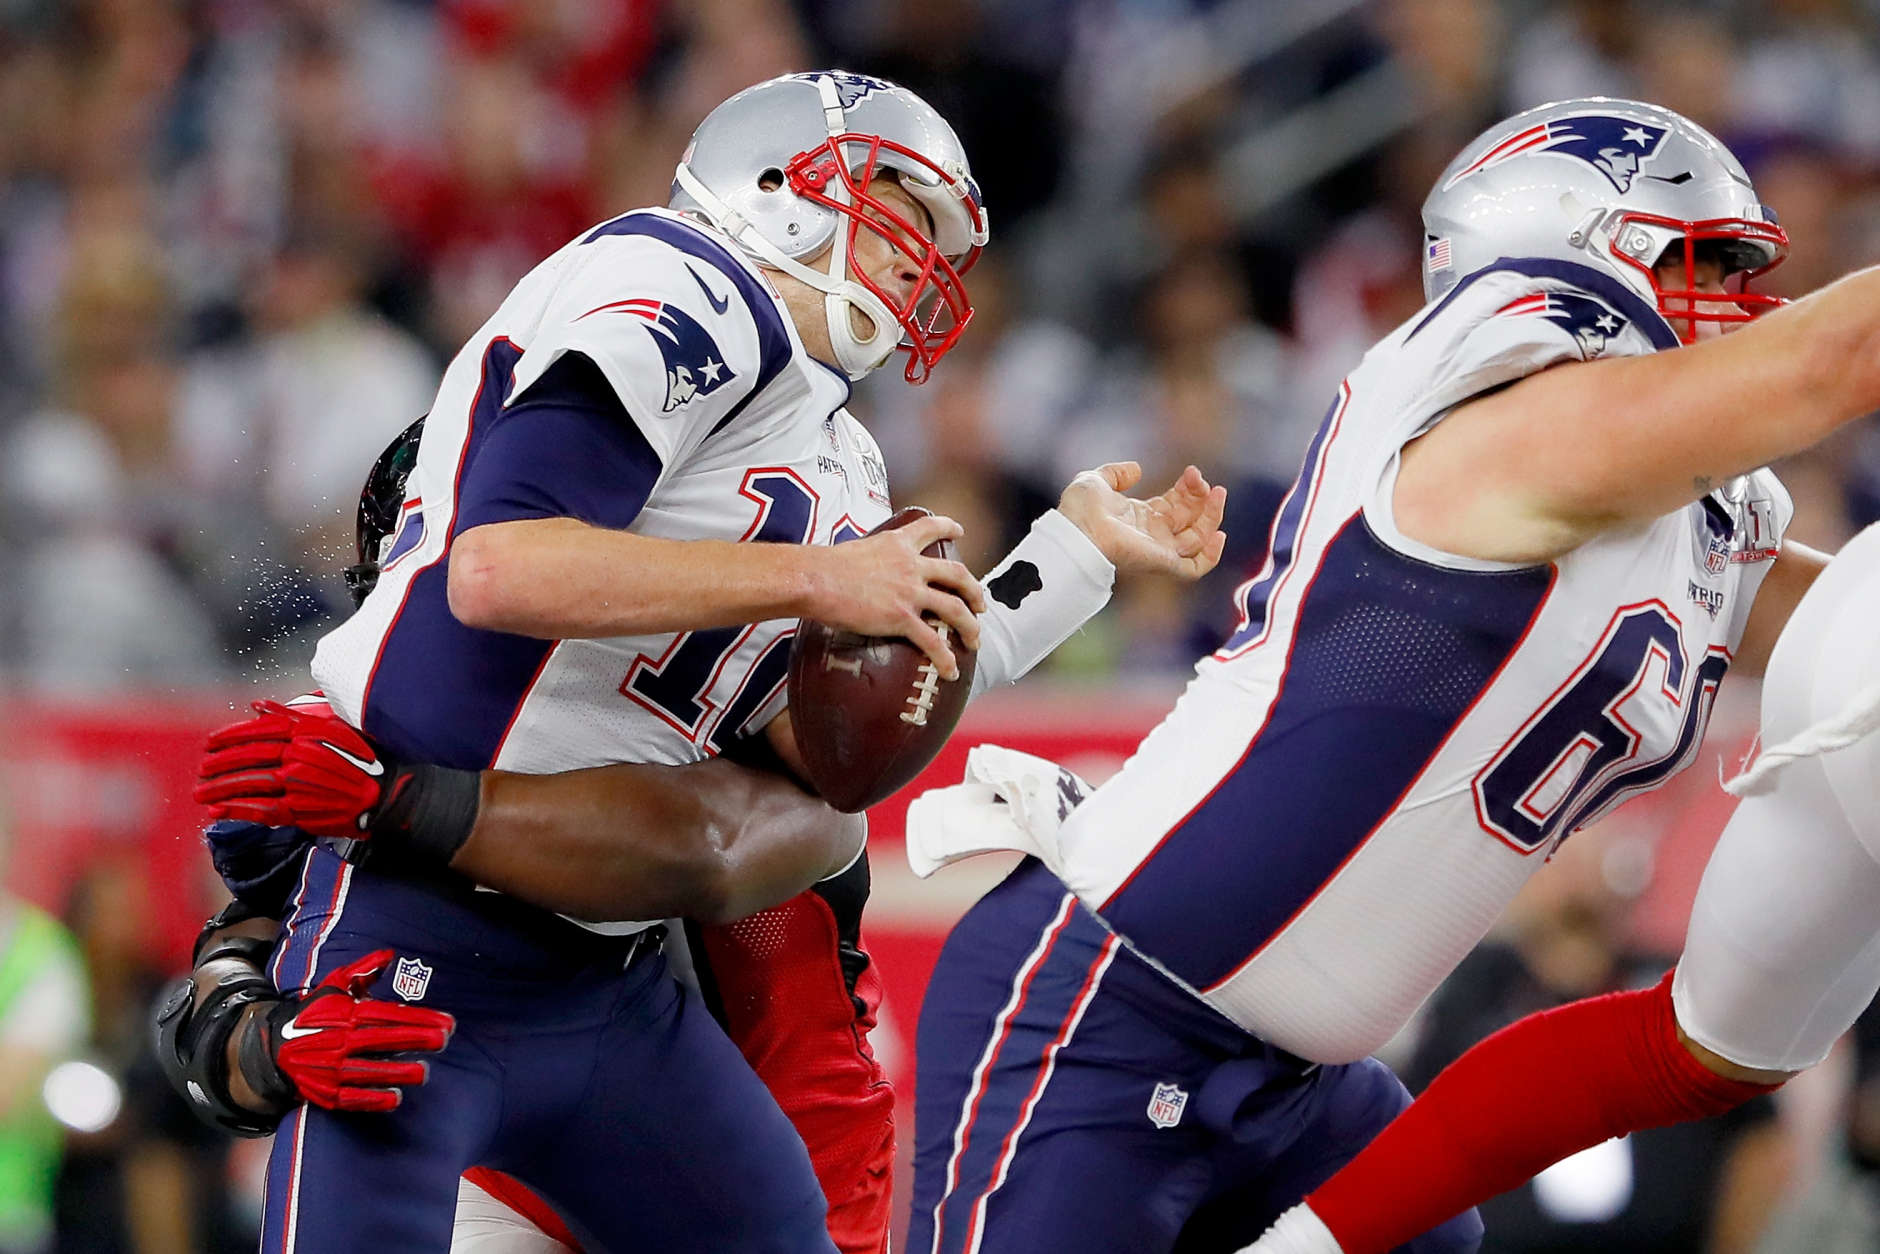 HOUSTON, TX - FEBRUARY 05: Tom Brady #12 of the New England Patriots is hit in the first quarter against the Atlanta Falcons during Super Bowl 51 at NRG Stadium on February 5, 2017 in Houston, Texas.  (Photo by Kevin C. Cox/Getty Images)